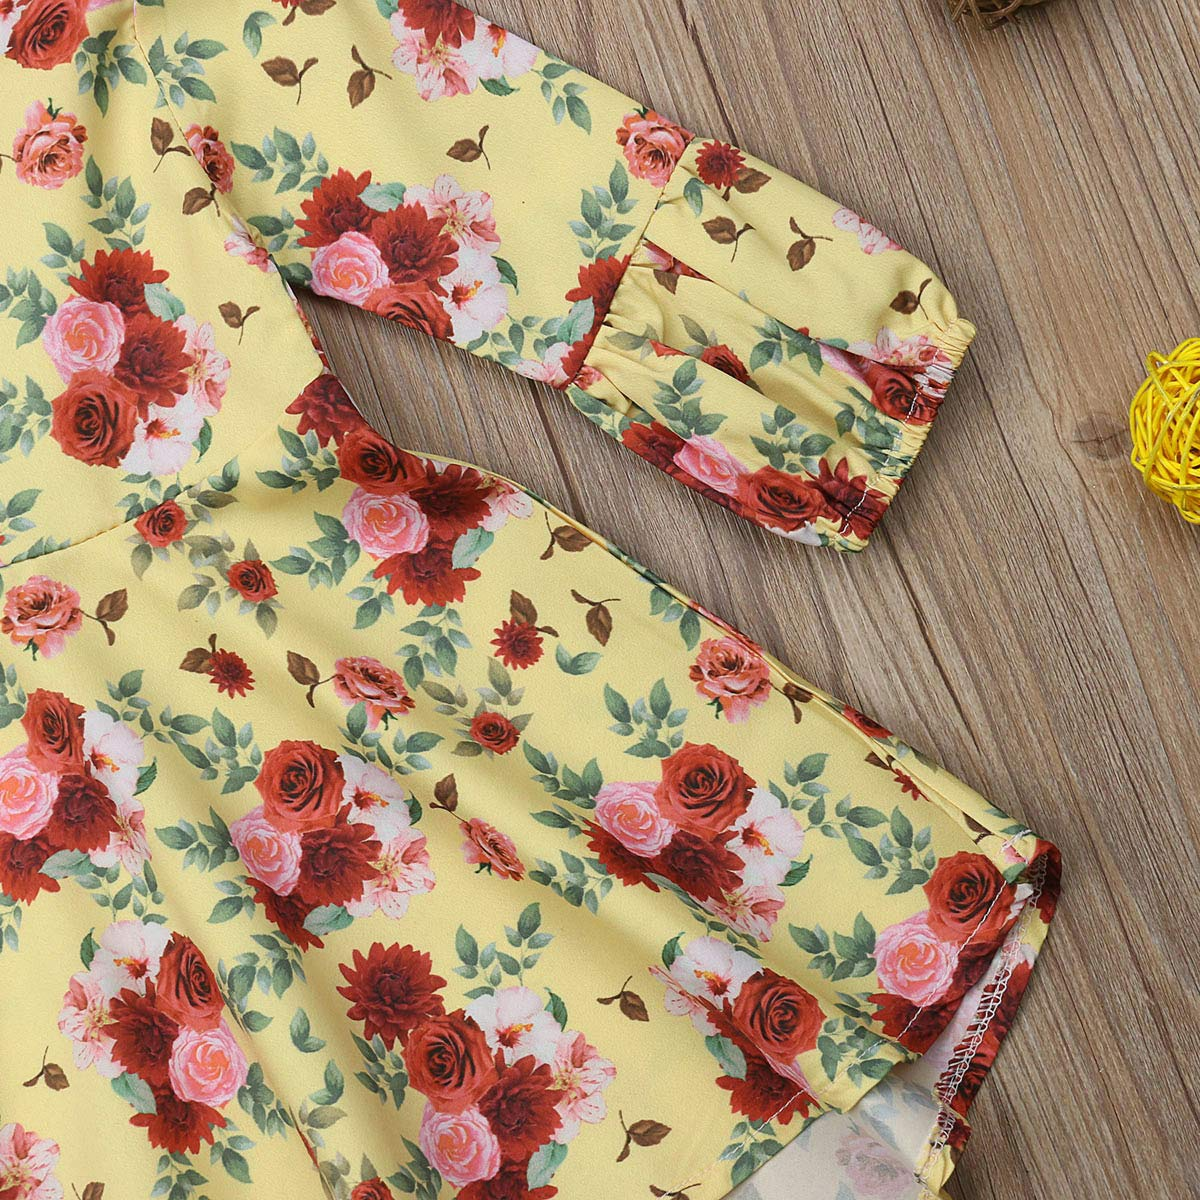 Lamuusaa Infant Baby Kid Girls Floral Dress Long Sleeve Ruffled Princess Party Dress Fall Winter Clothes 6M-5Y